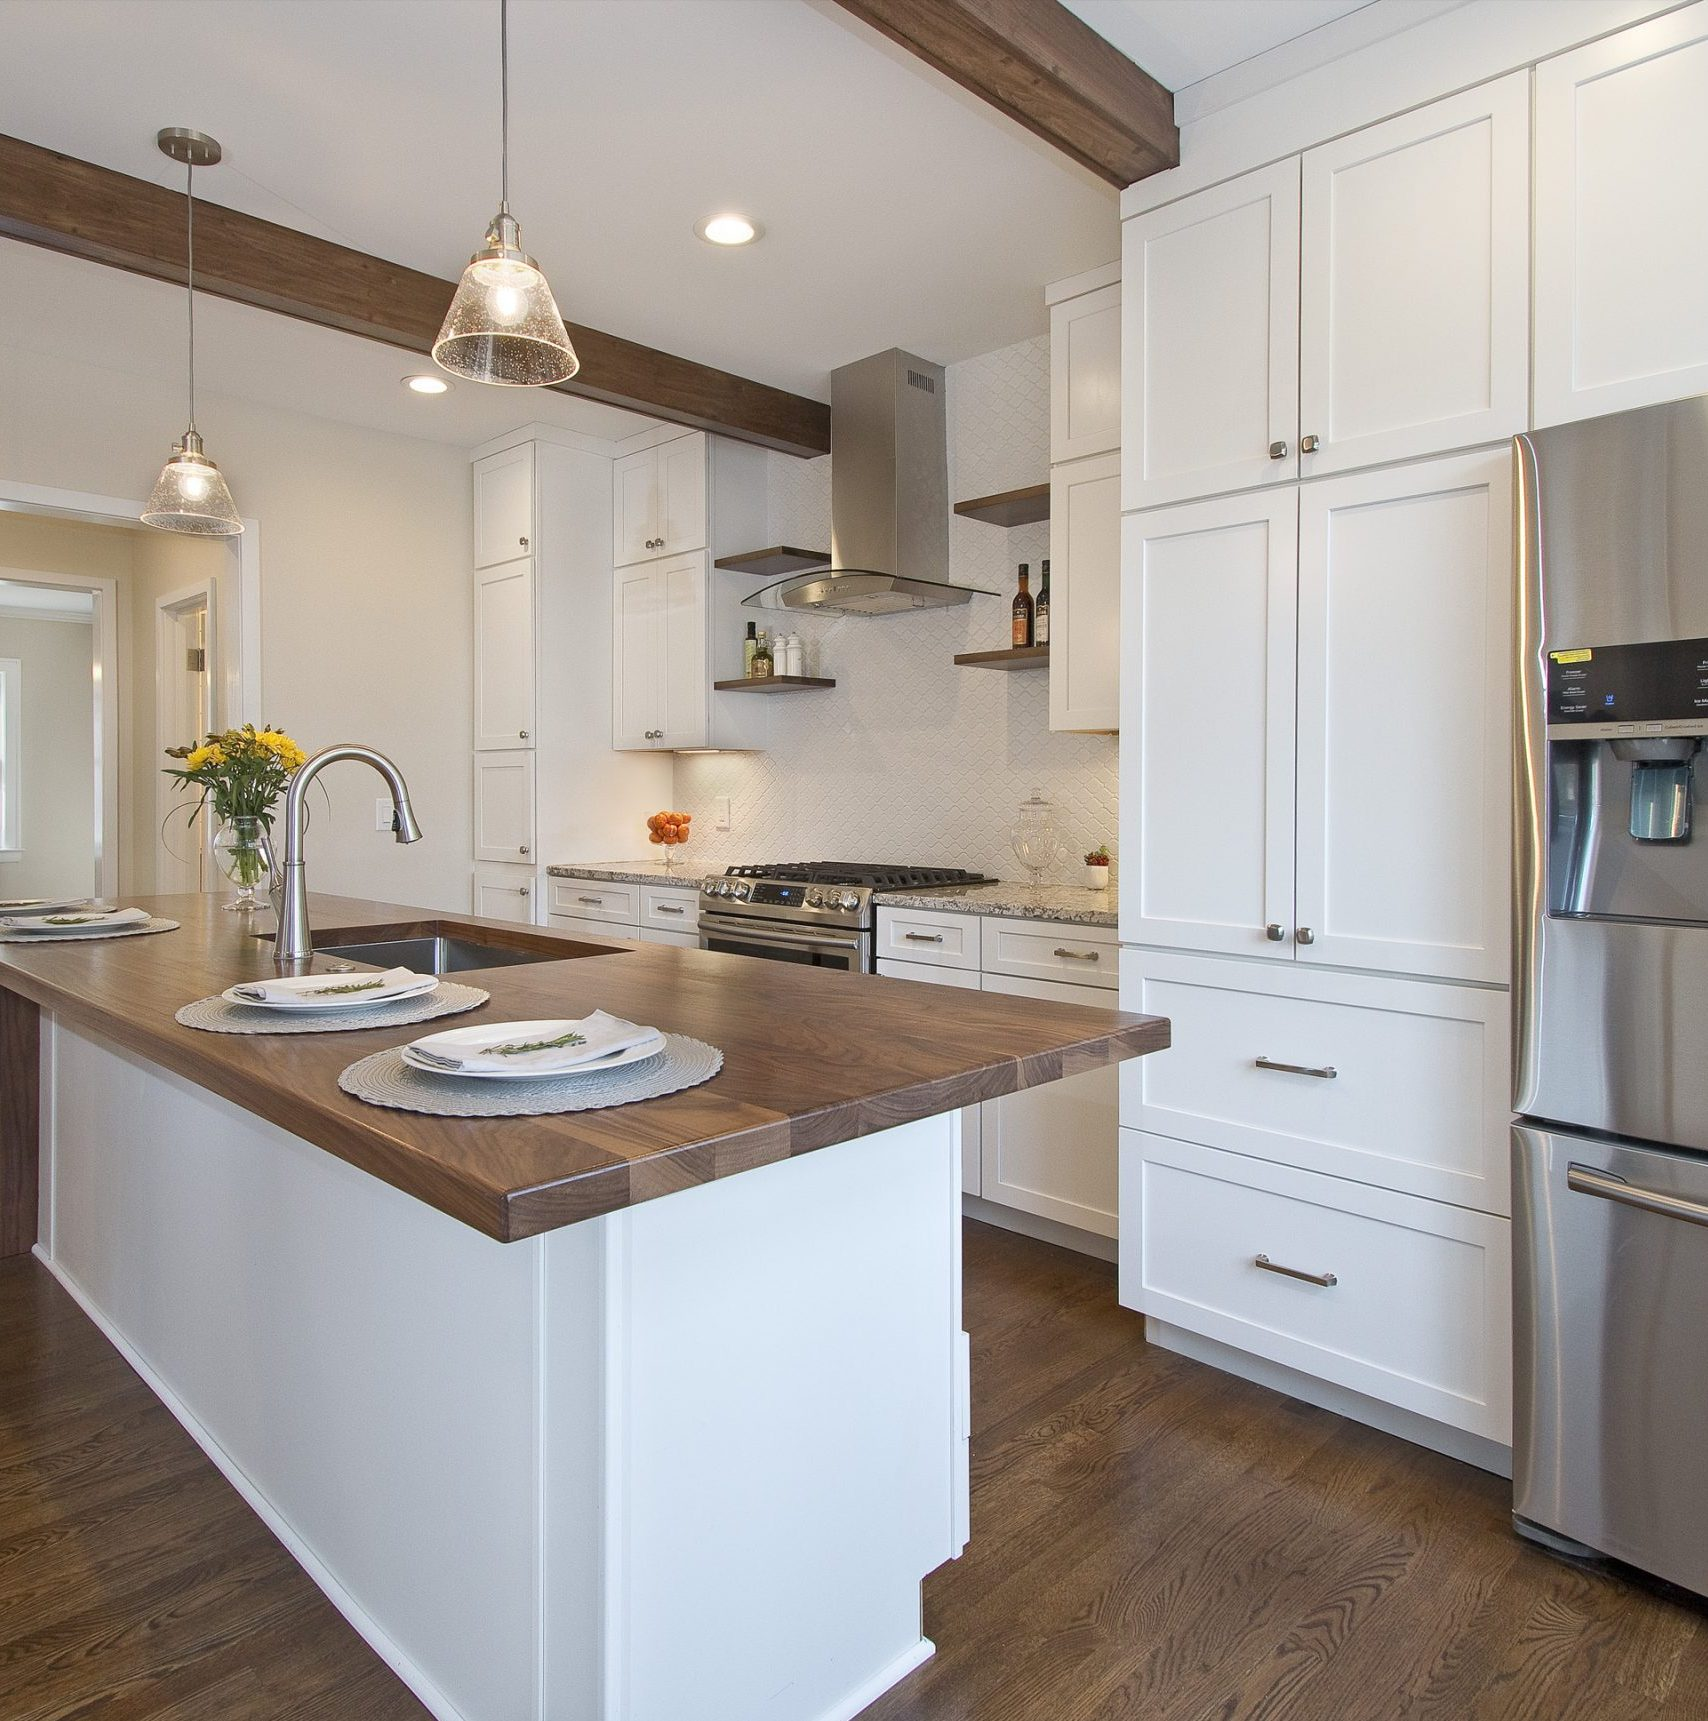 White cabinetry remains a popular choice, but greys and blues are trending, too